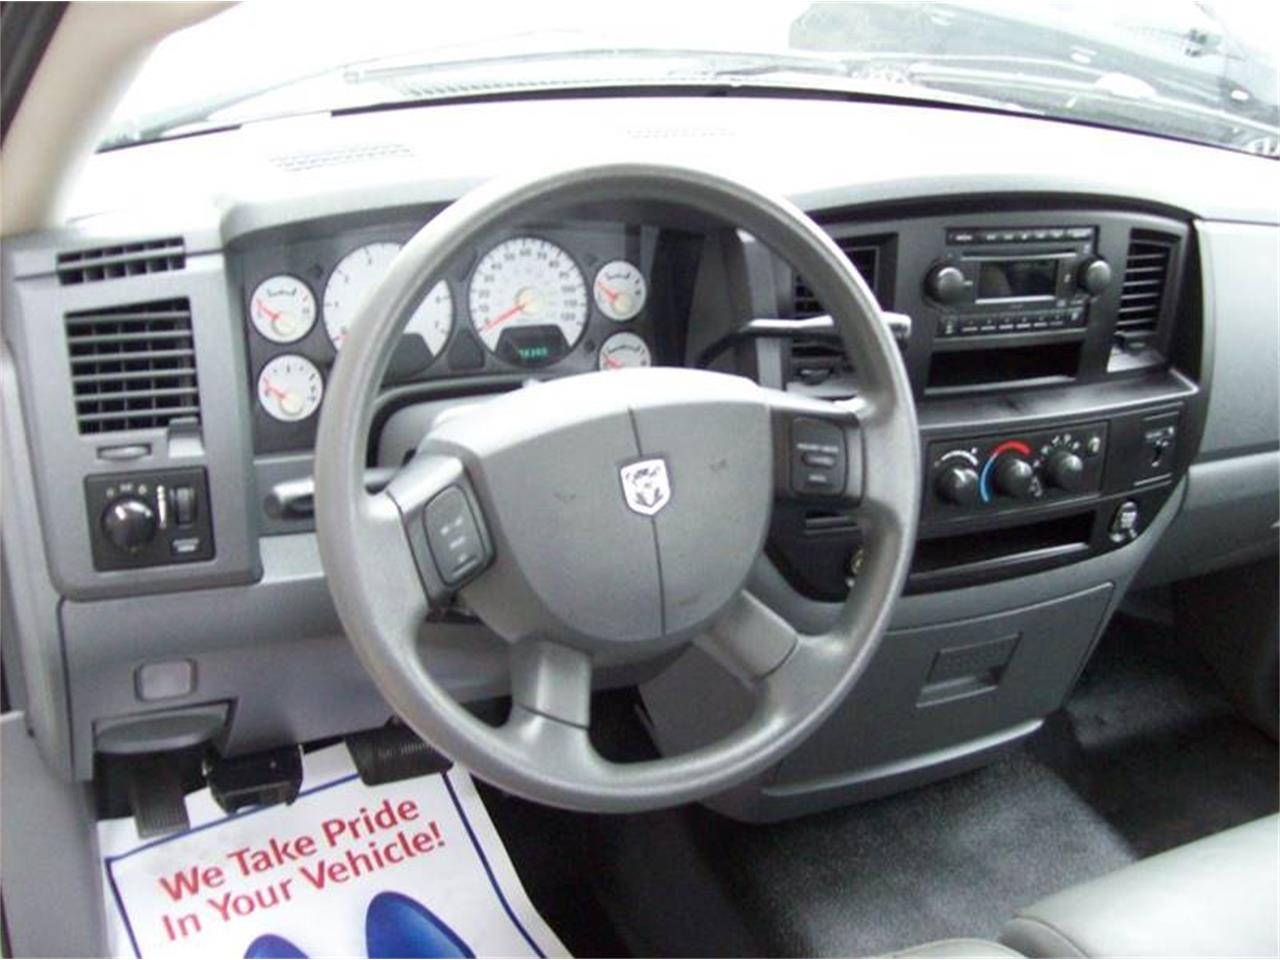 Large Picture of 2007 Dodge Ram 2500 located in Michigan - $10,495.00 Offered by Verhage Mitsubishi - Q19T